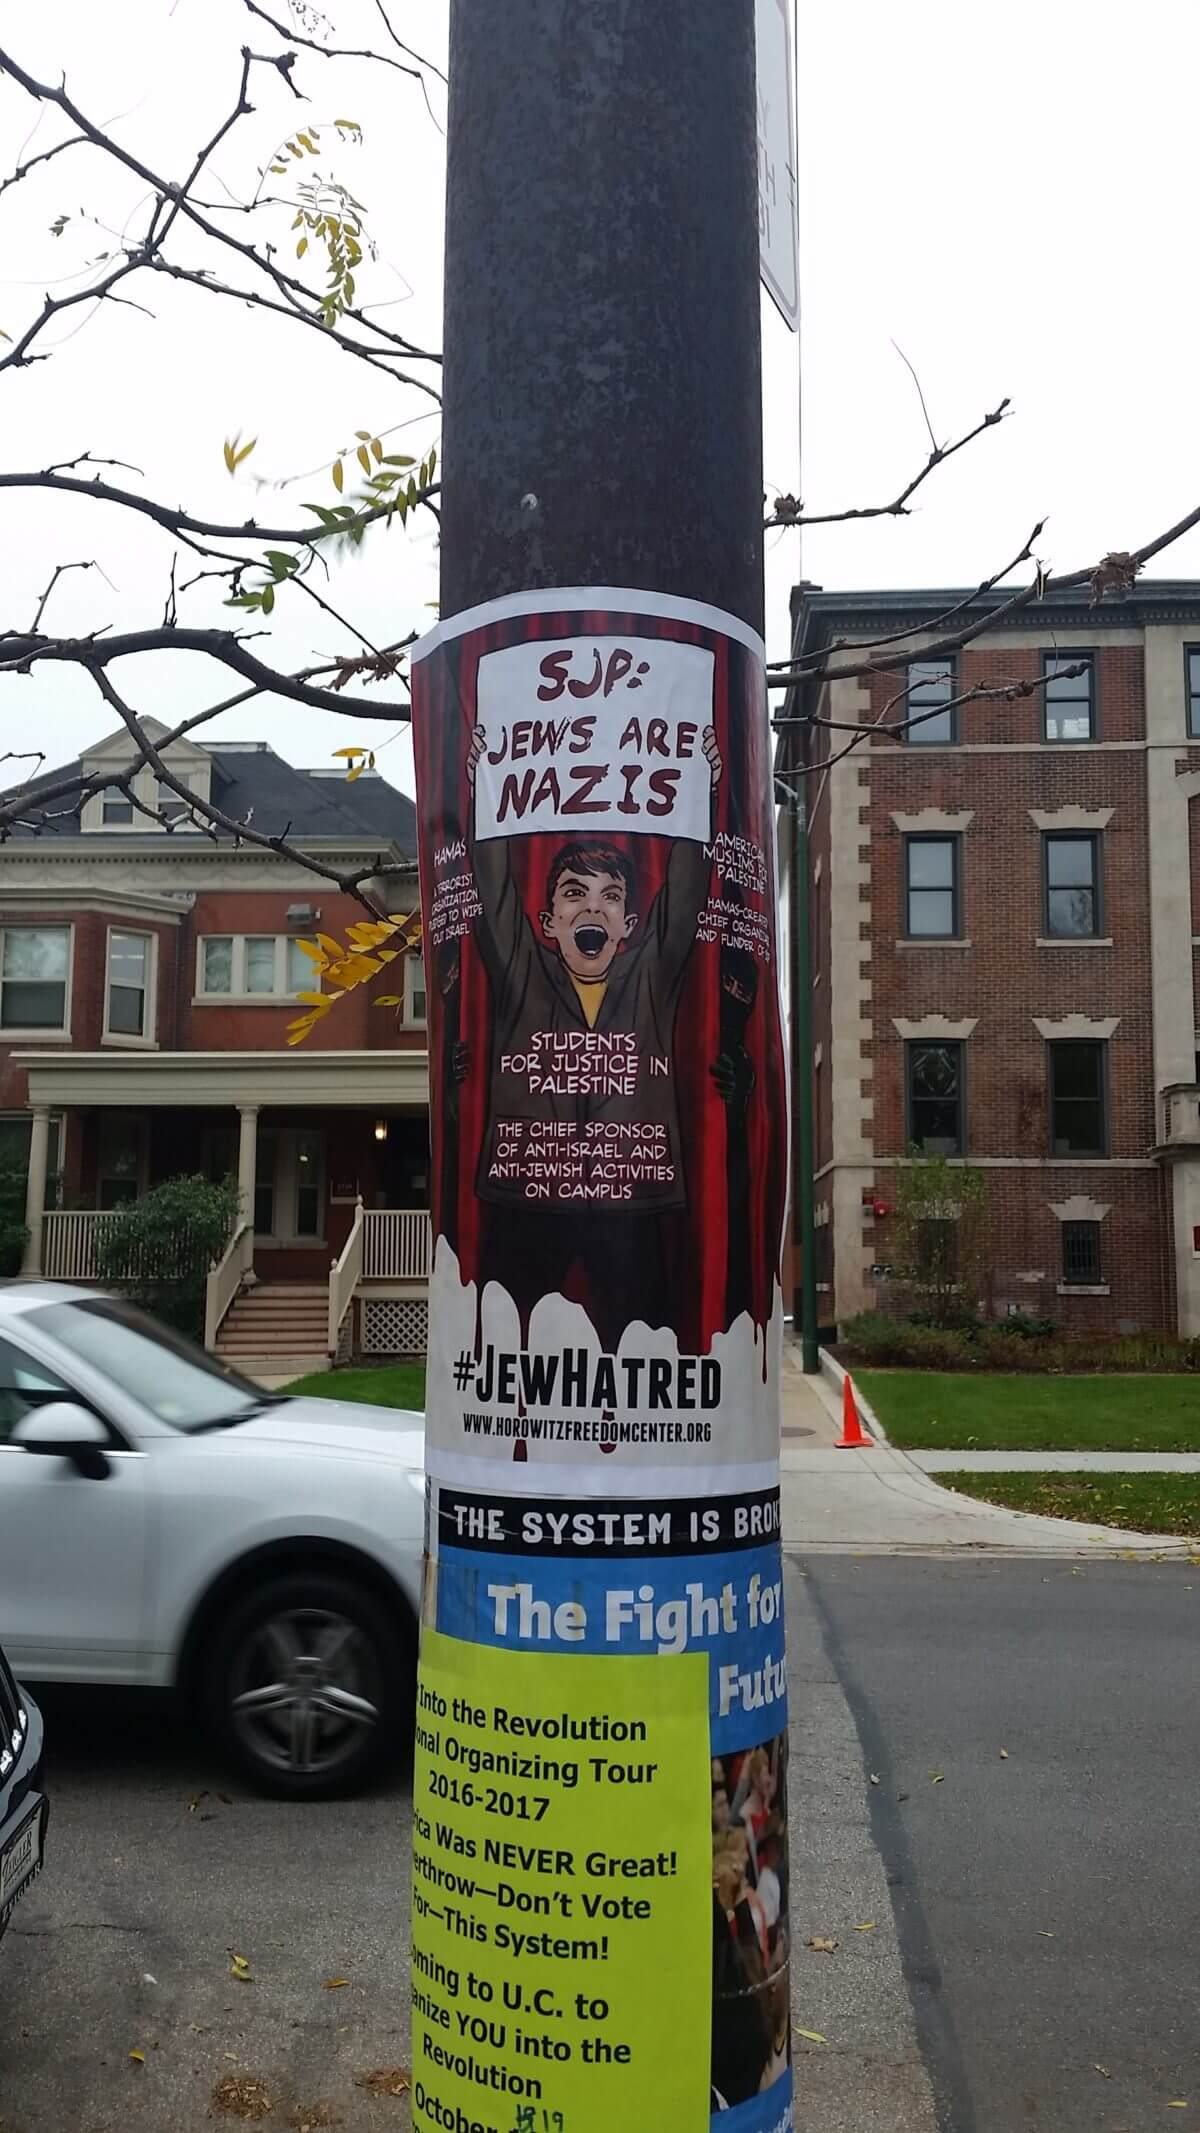 Posters on University of Chicago campus